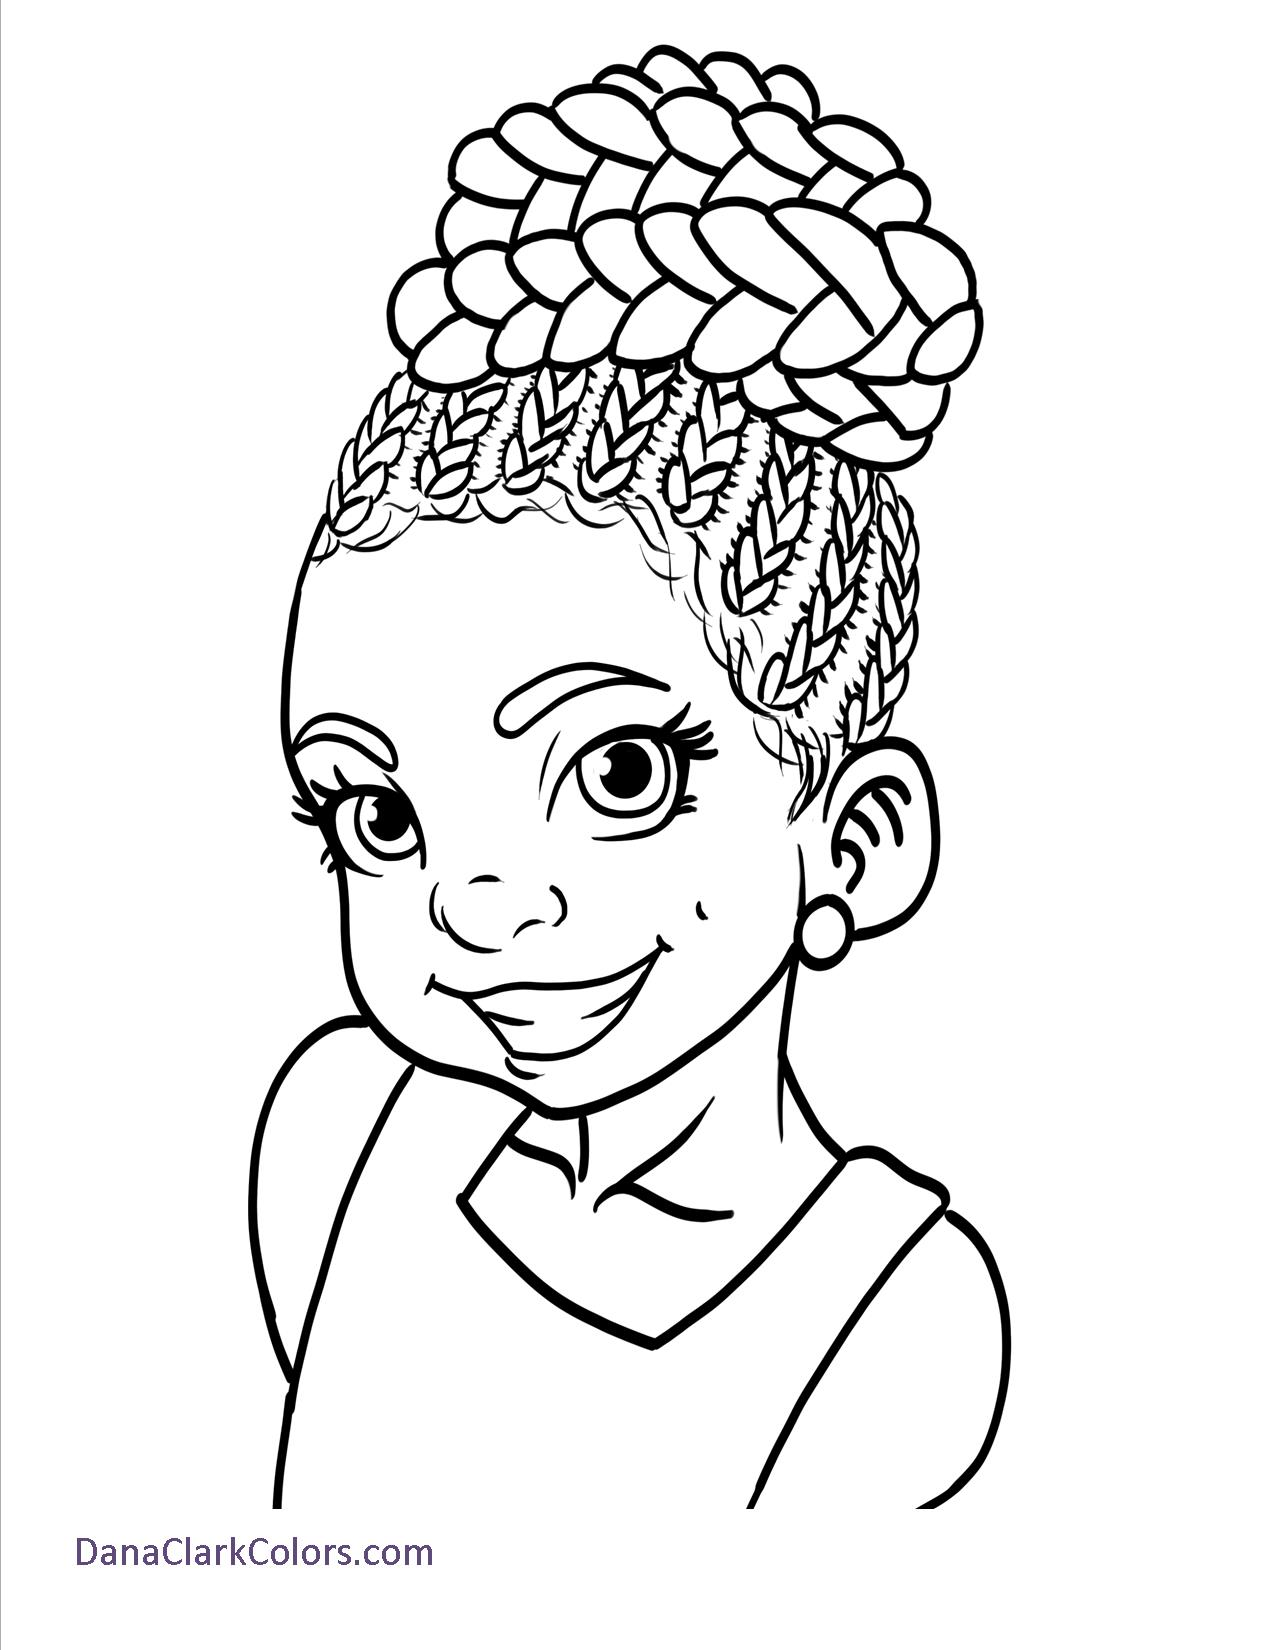 Free coloring in pages - Free Coloring Page 2